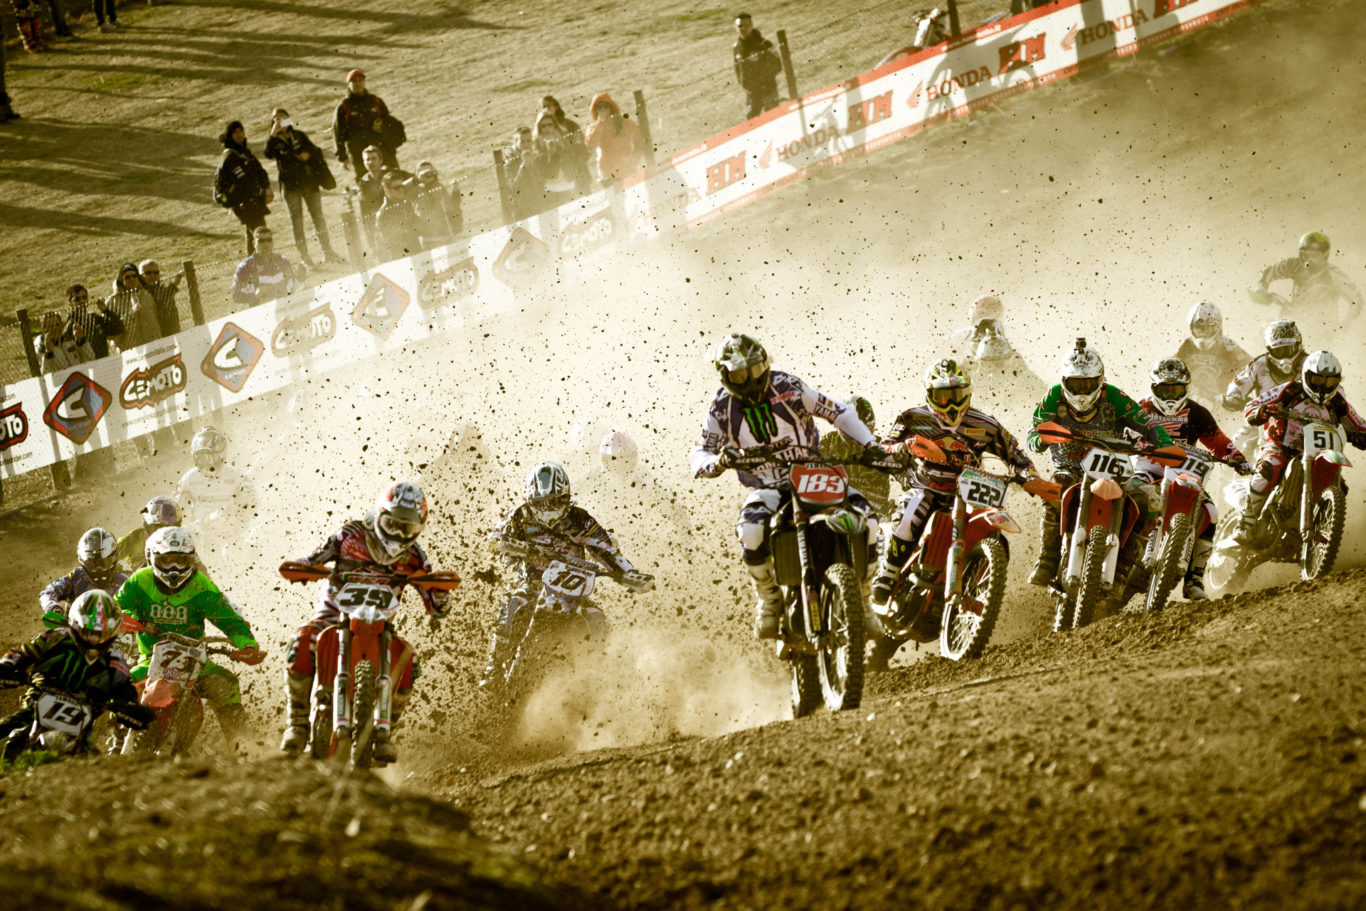 Best shot of The world Motocross championship race for the Italian international competition took place with around 100 riders from all over the world fighting to win the second last match of the tournament.